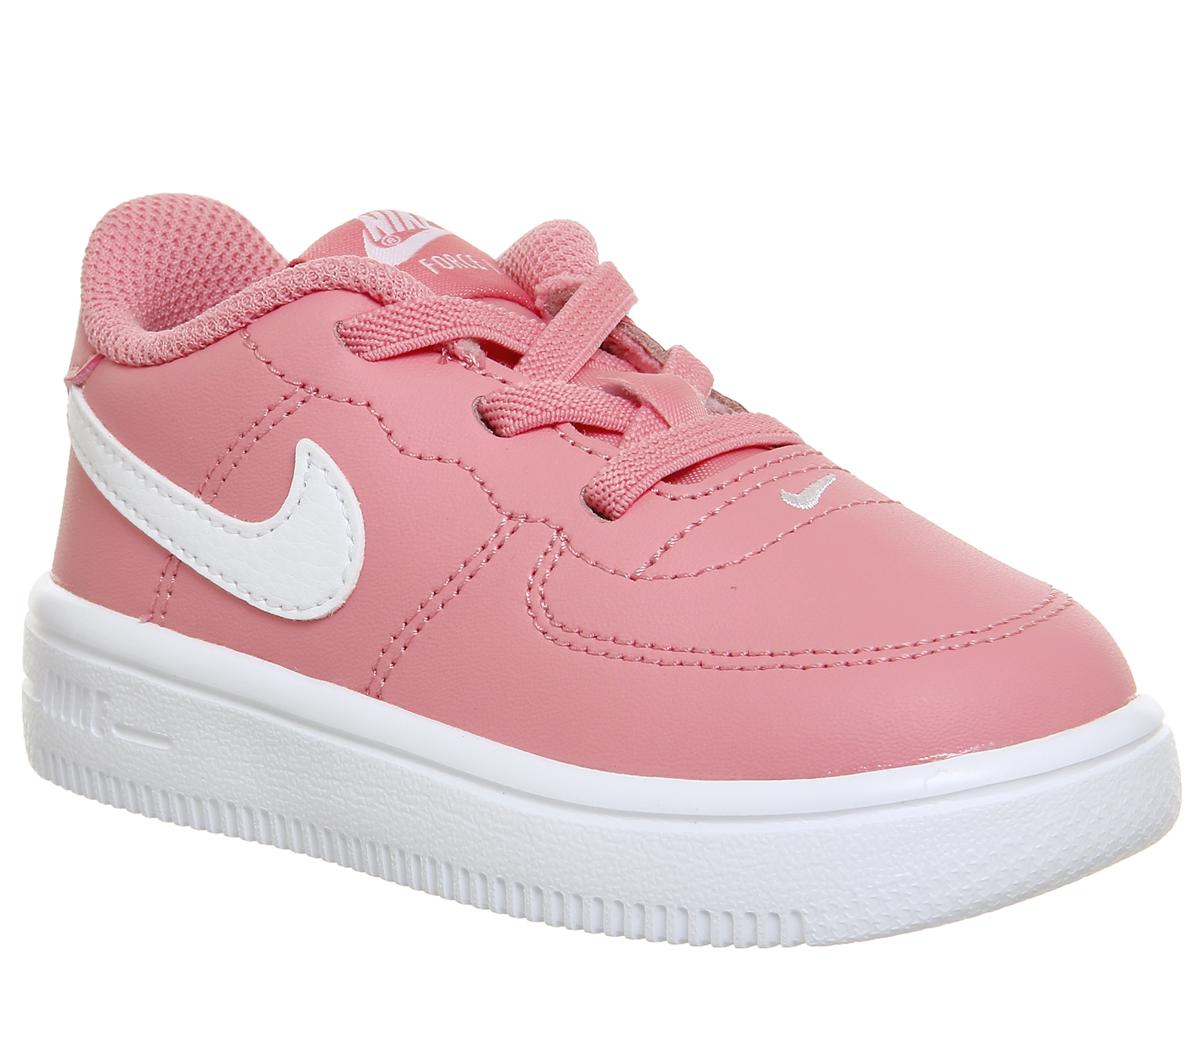 Nike Air Force 1 Infant Pink White - Unisex